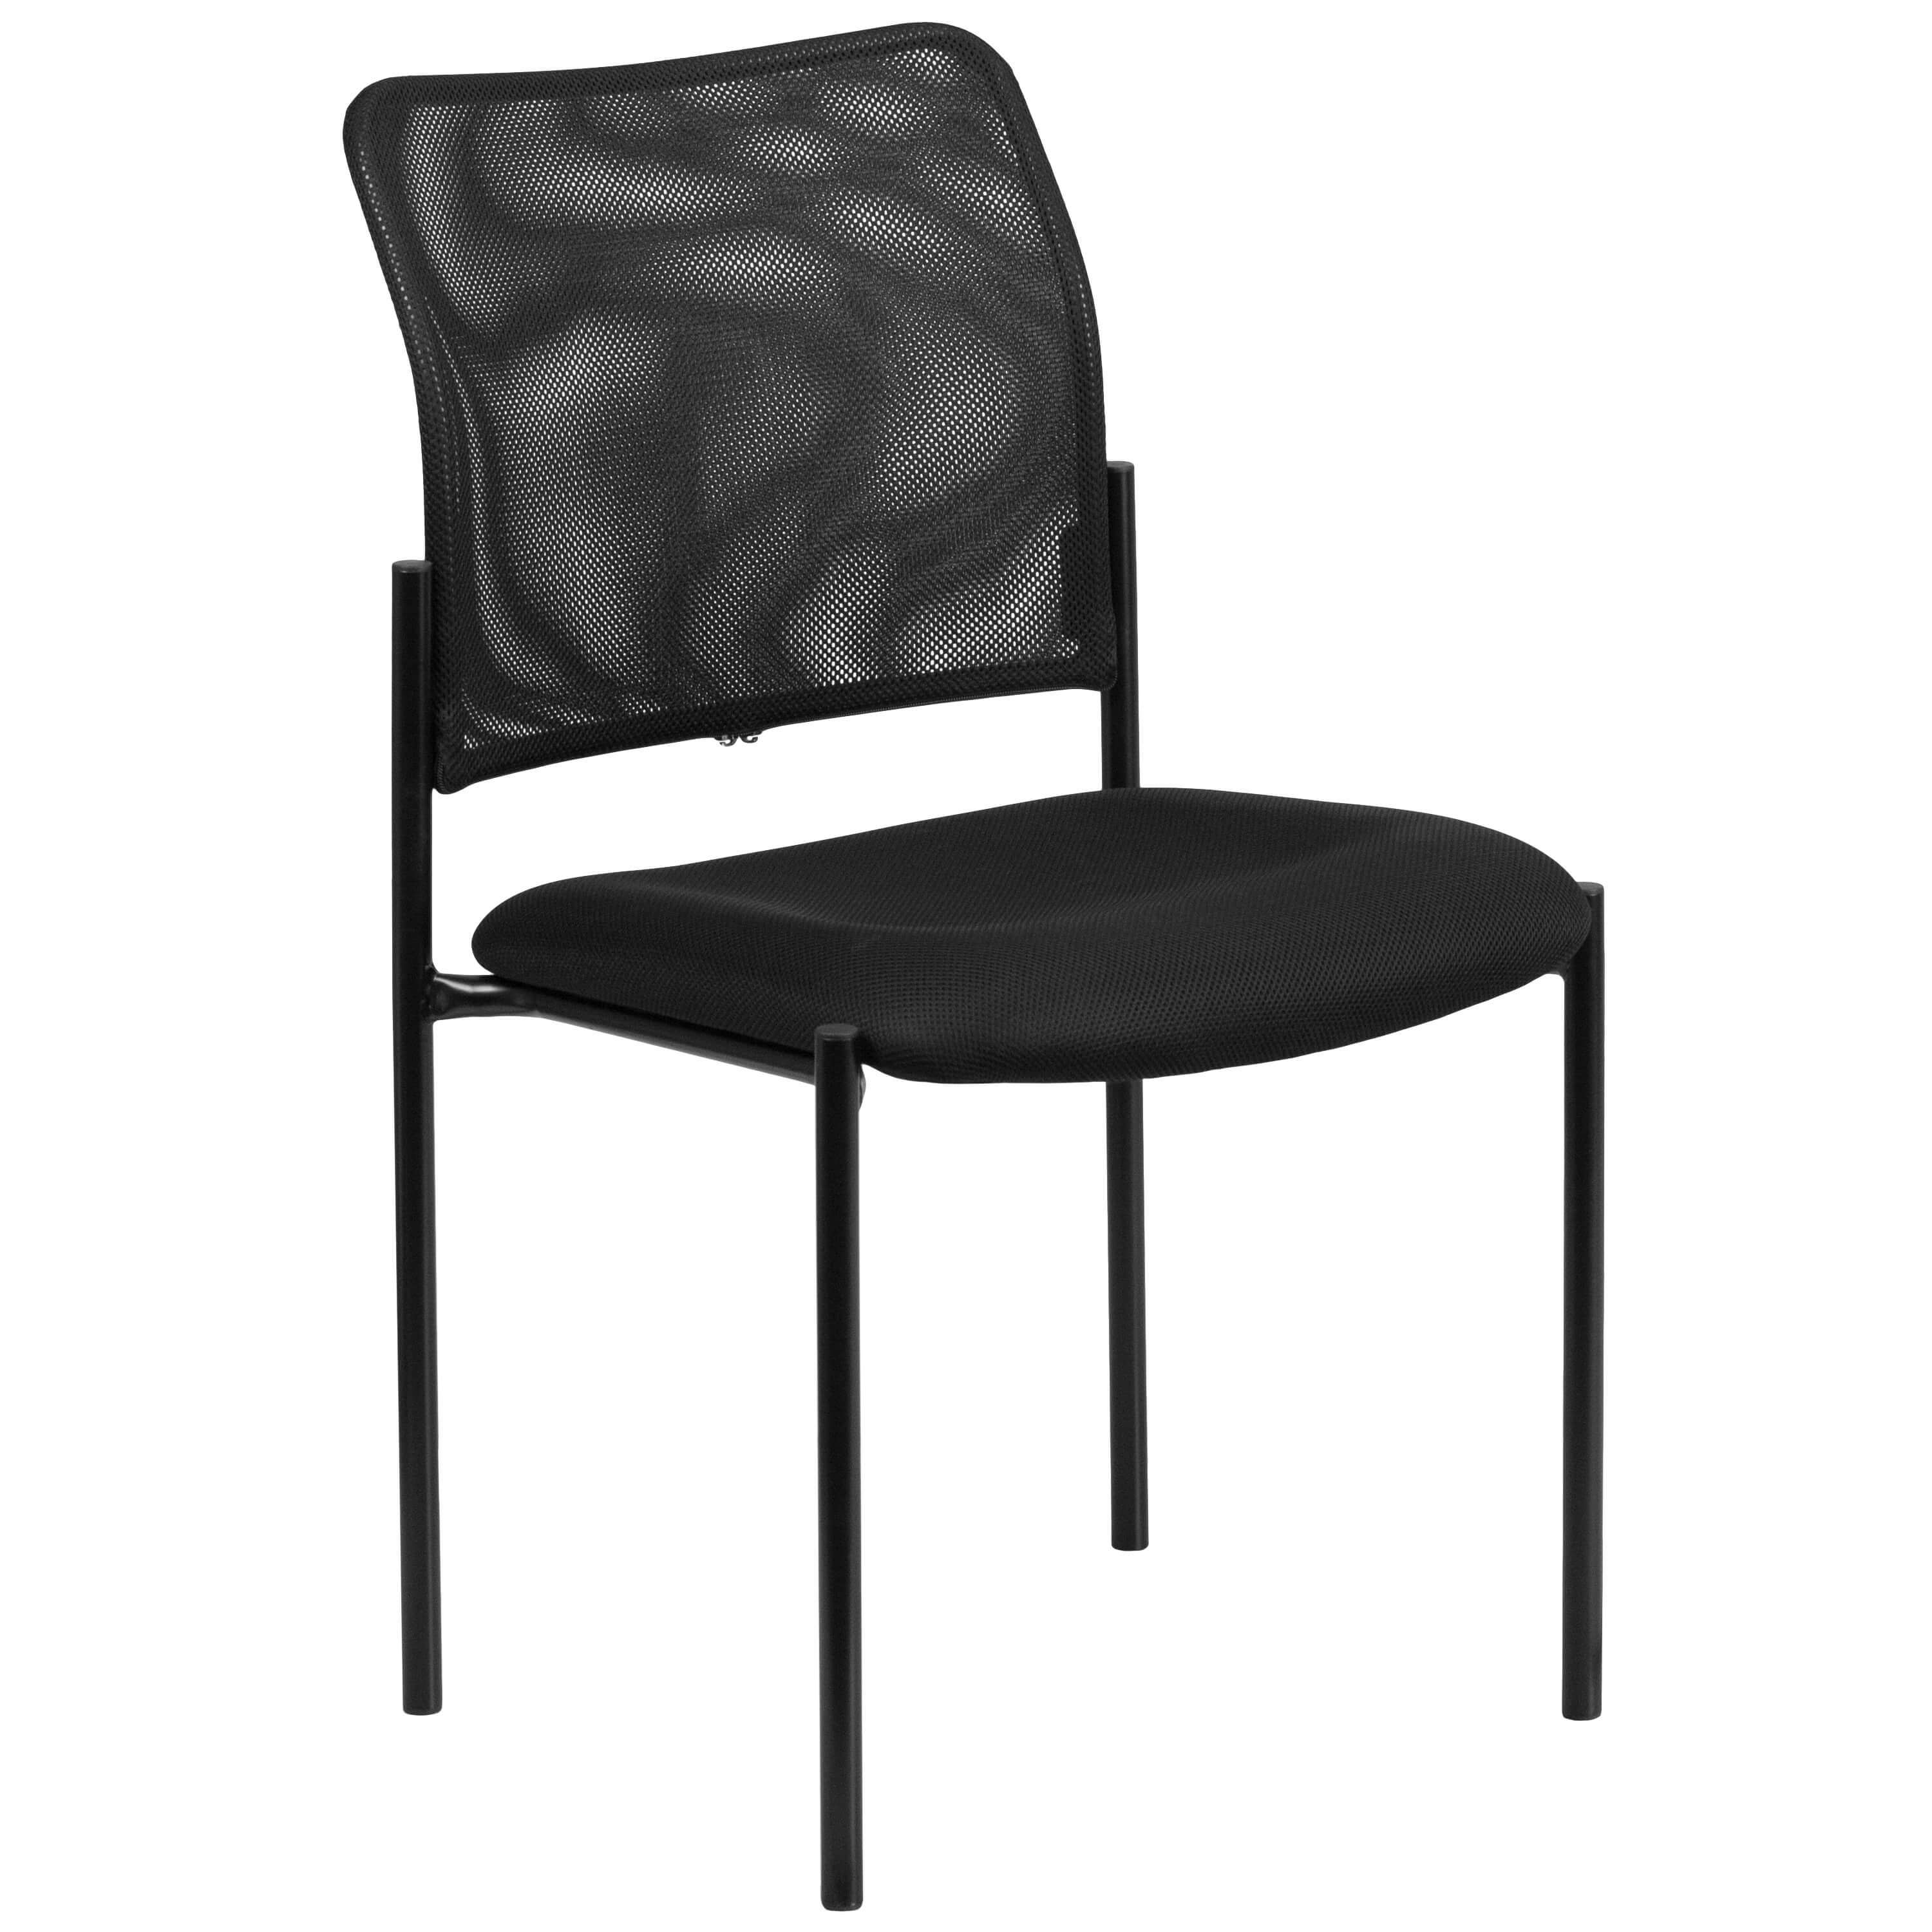 Stackable chairs CUB GO 515 2 GG FLA